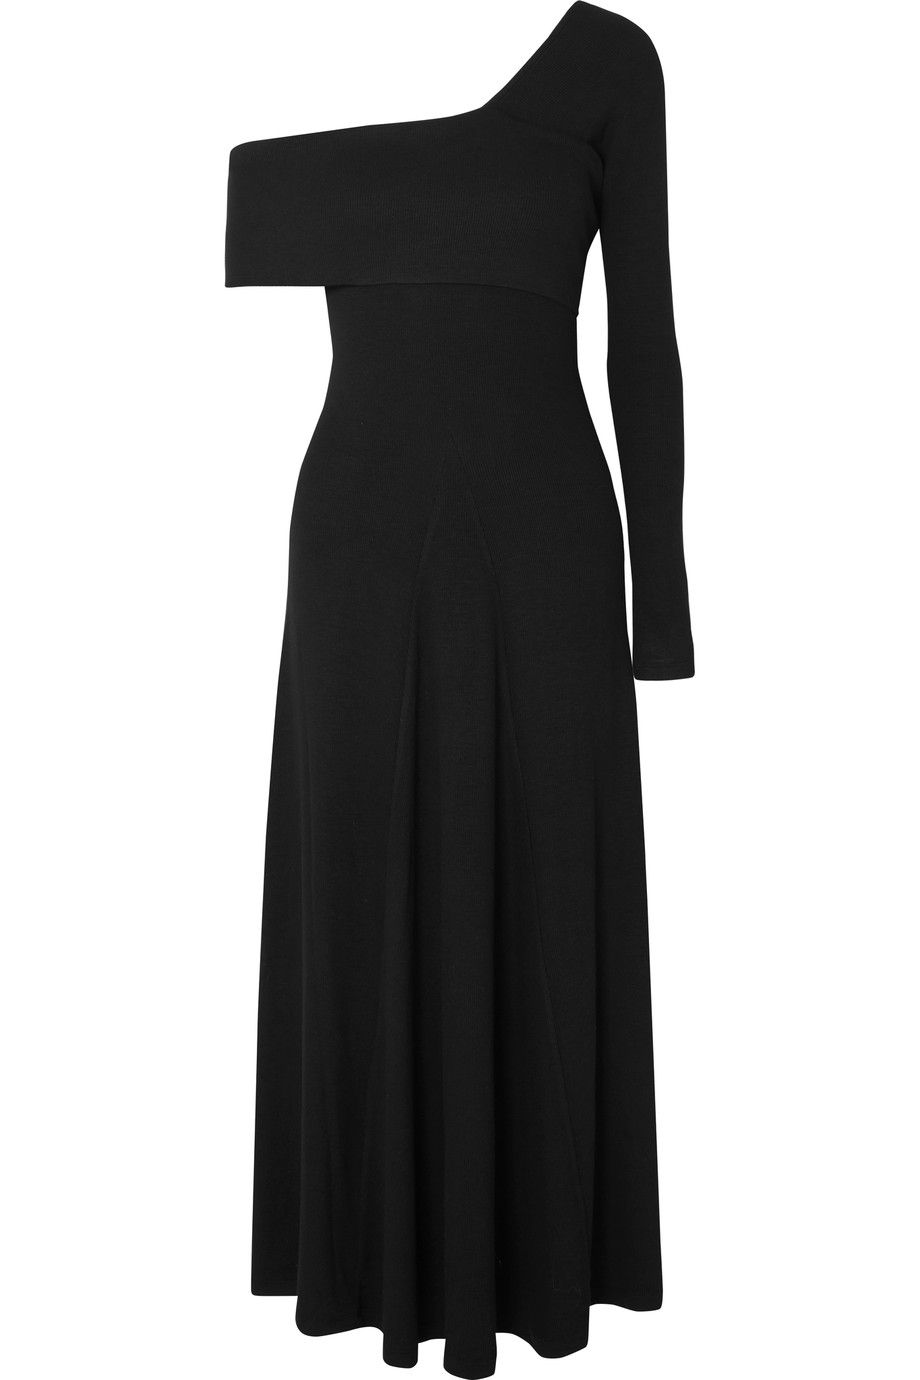 With Mastercard Online Cheap Real Authentic Alora Asymmetric Ribbed Stretch-knit Maxi Dress - Black Beaufille Cheap Sale Very Cheap Discount Fashionable Clearance 100% Authentic HVLZLzZdrK